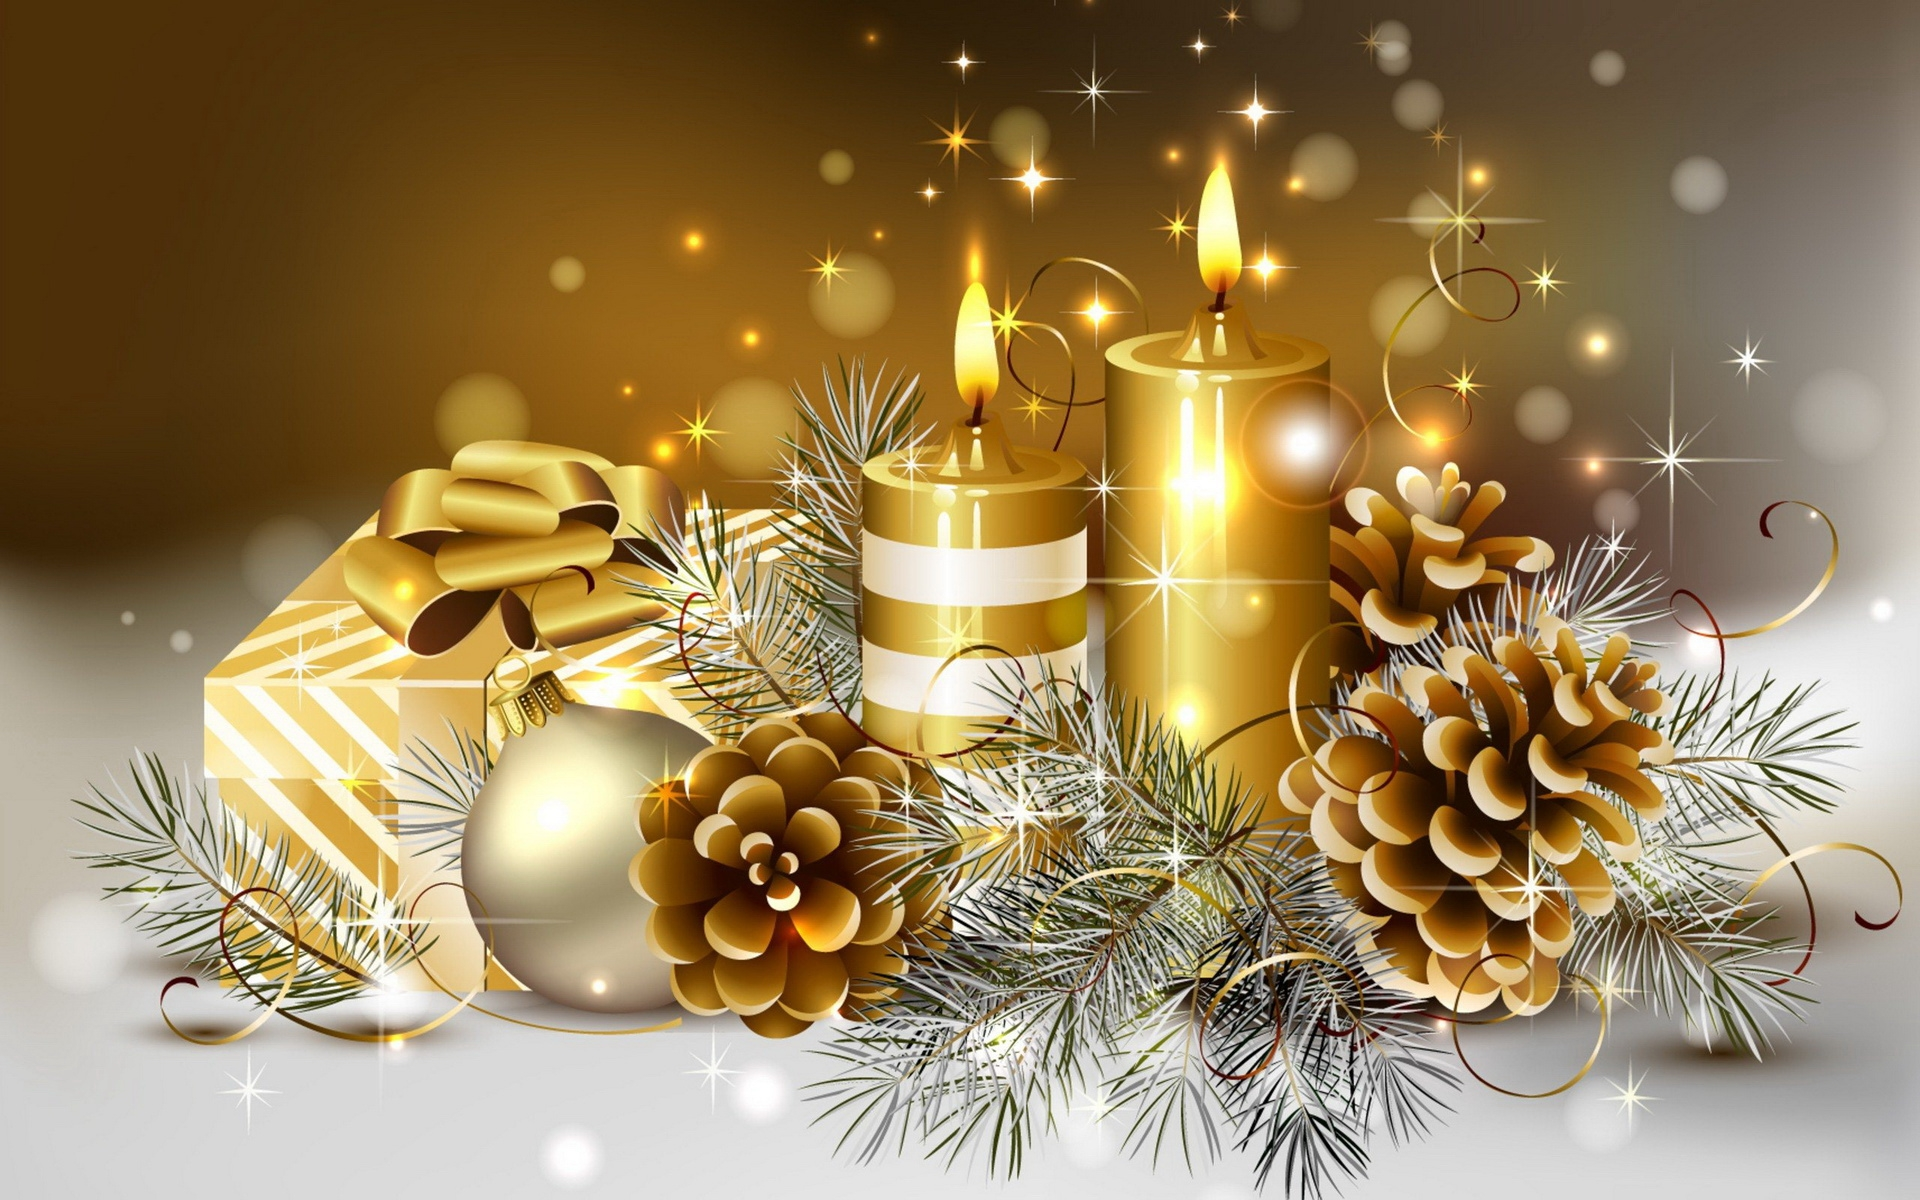 free christmas wallpaper 16204